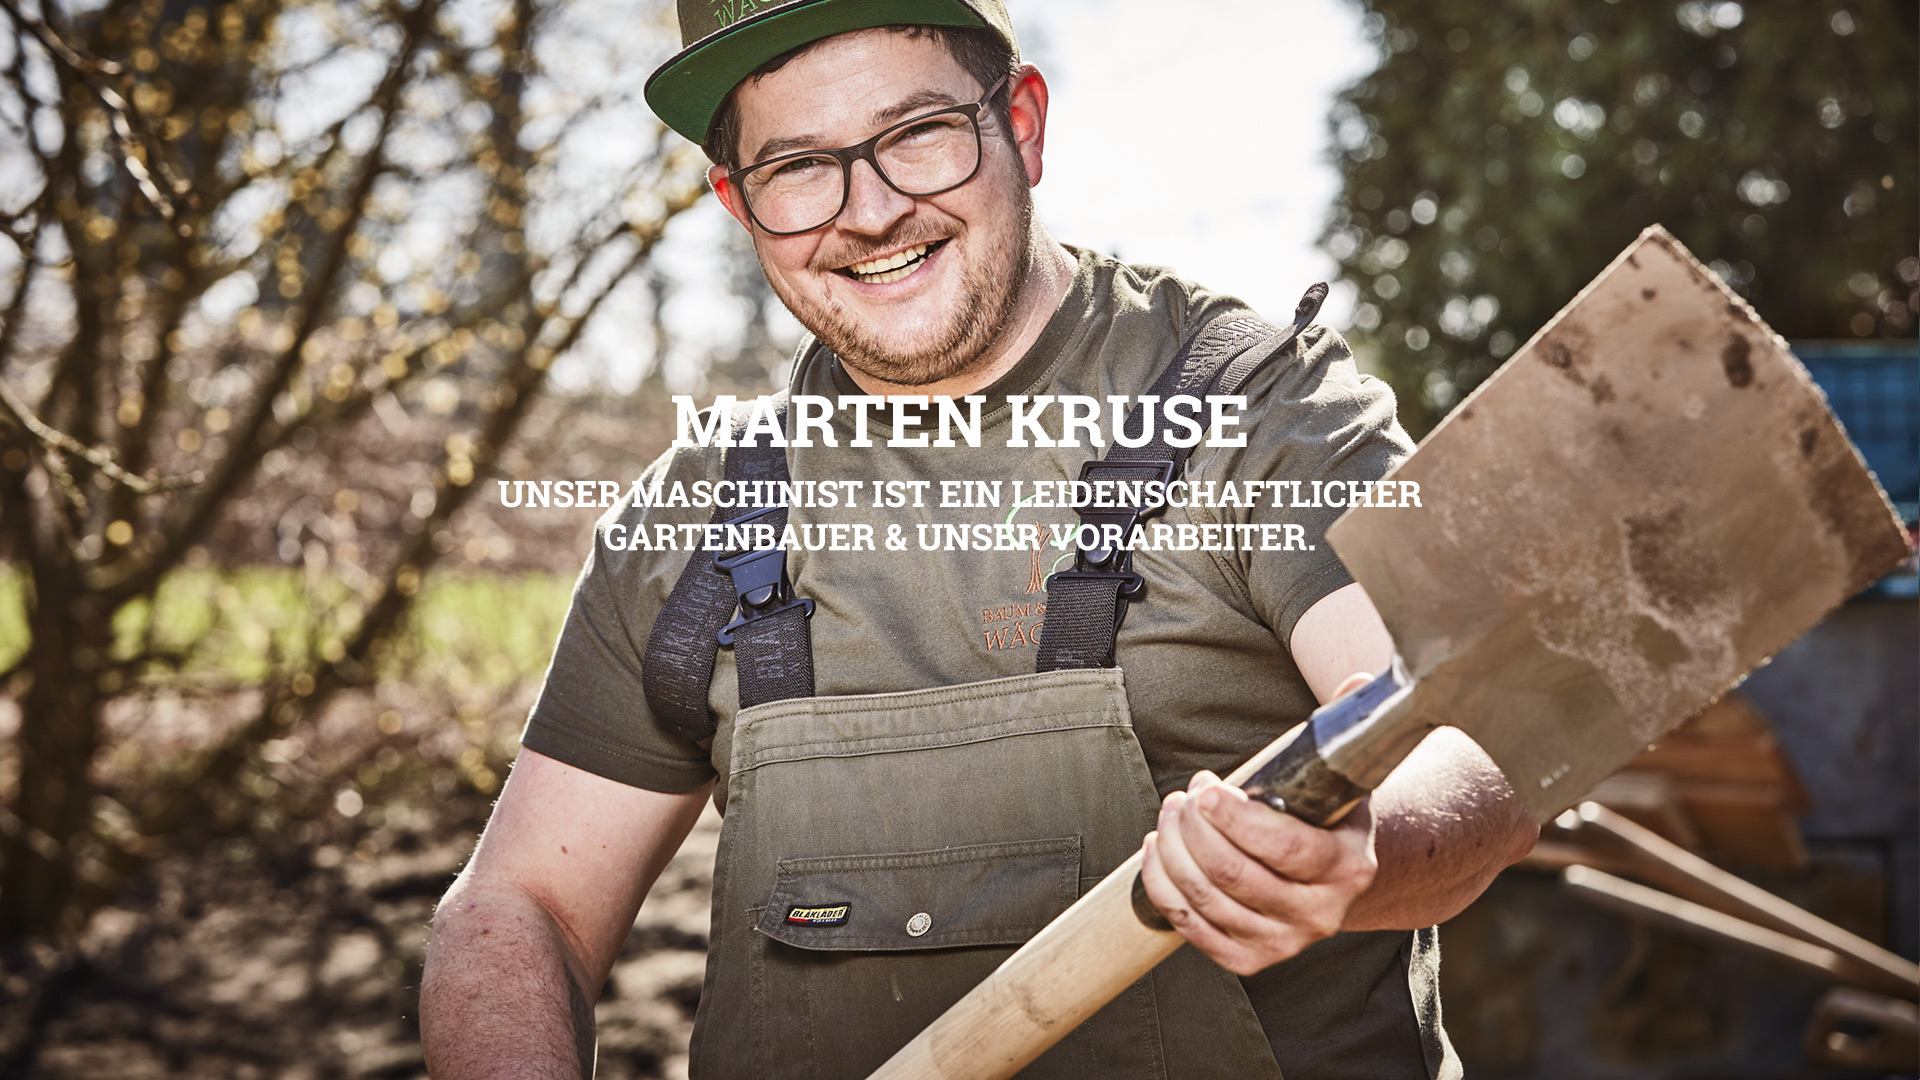 https://www.garten-waechter.de/wp-content/uploads/2020/08/slider-start02-neu.jpg